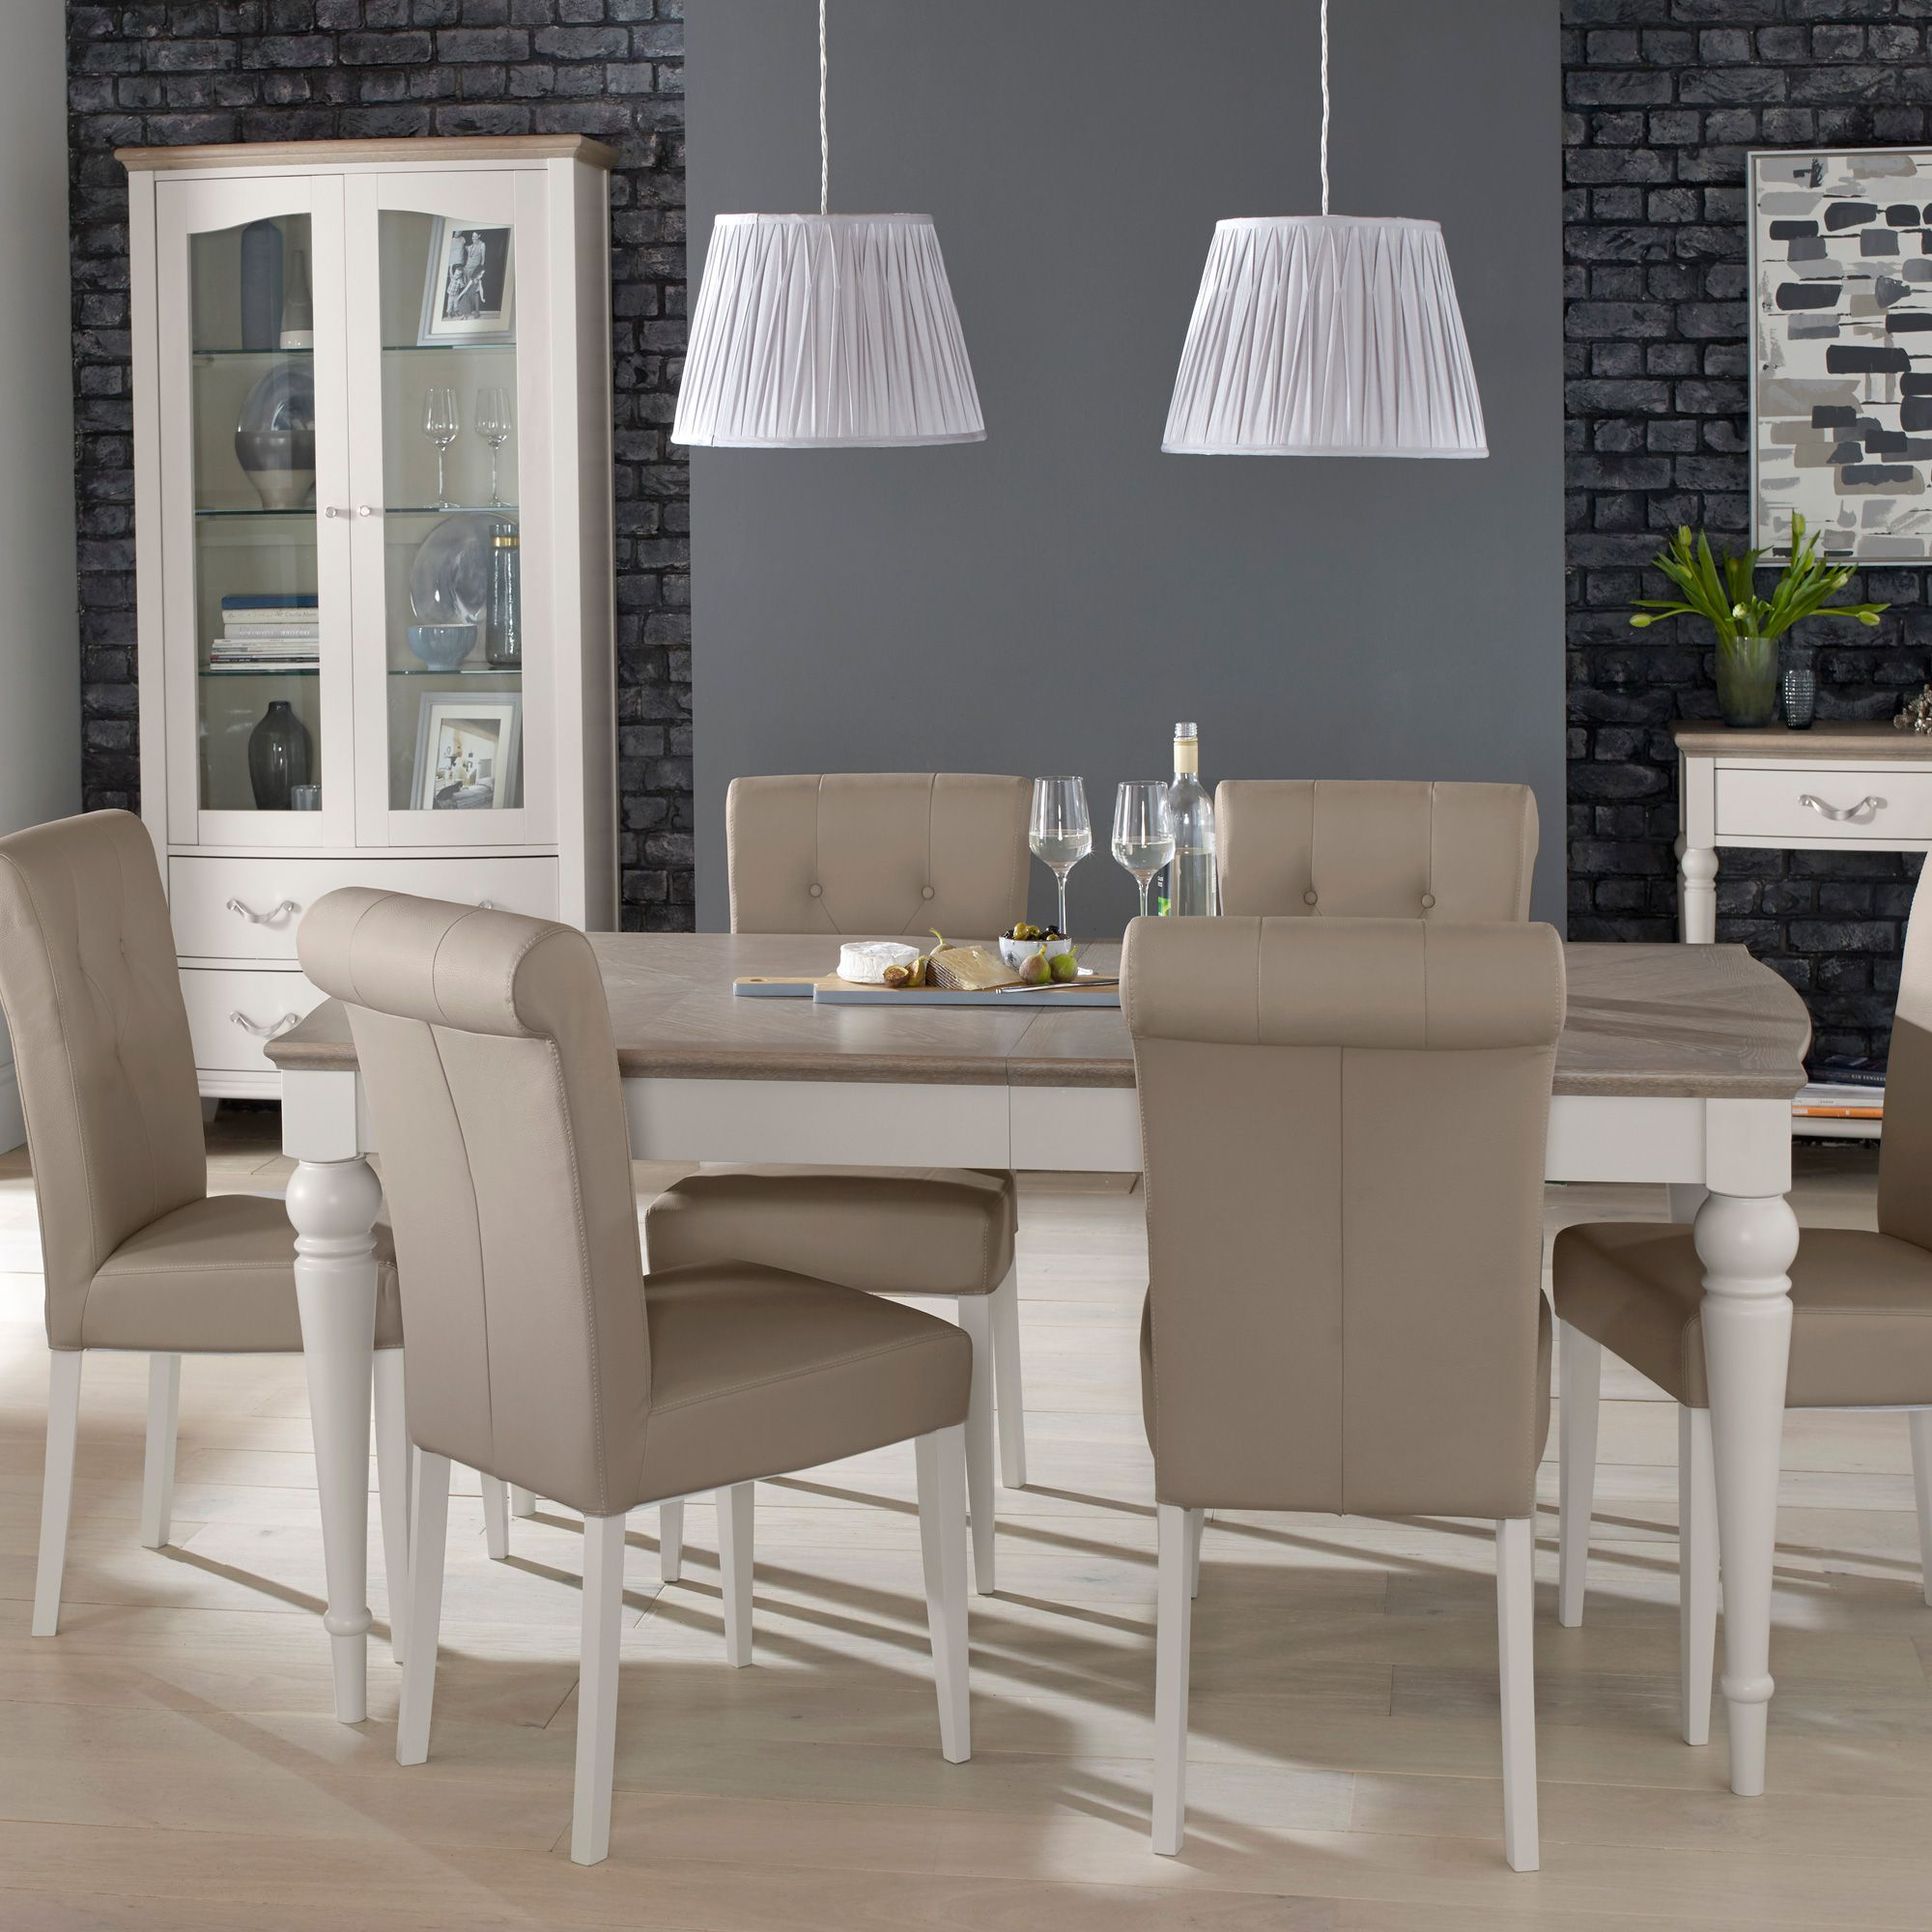 Freeport 6 8 Person Grey Washed Oak Extending Dining Table Upholstered Fabric Chairs